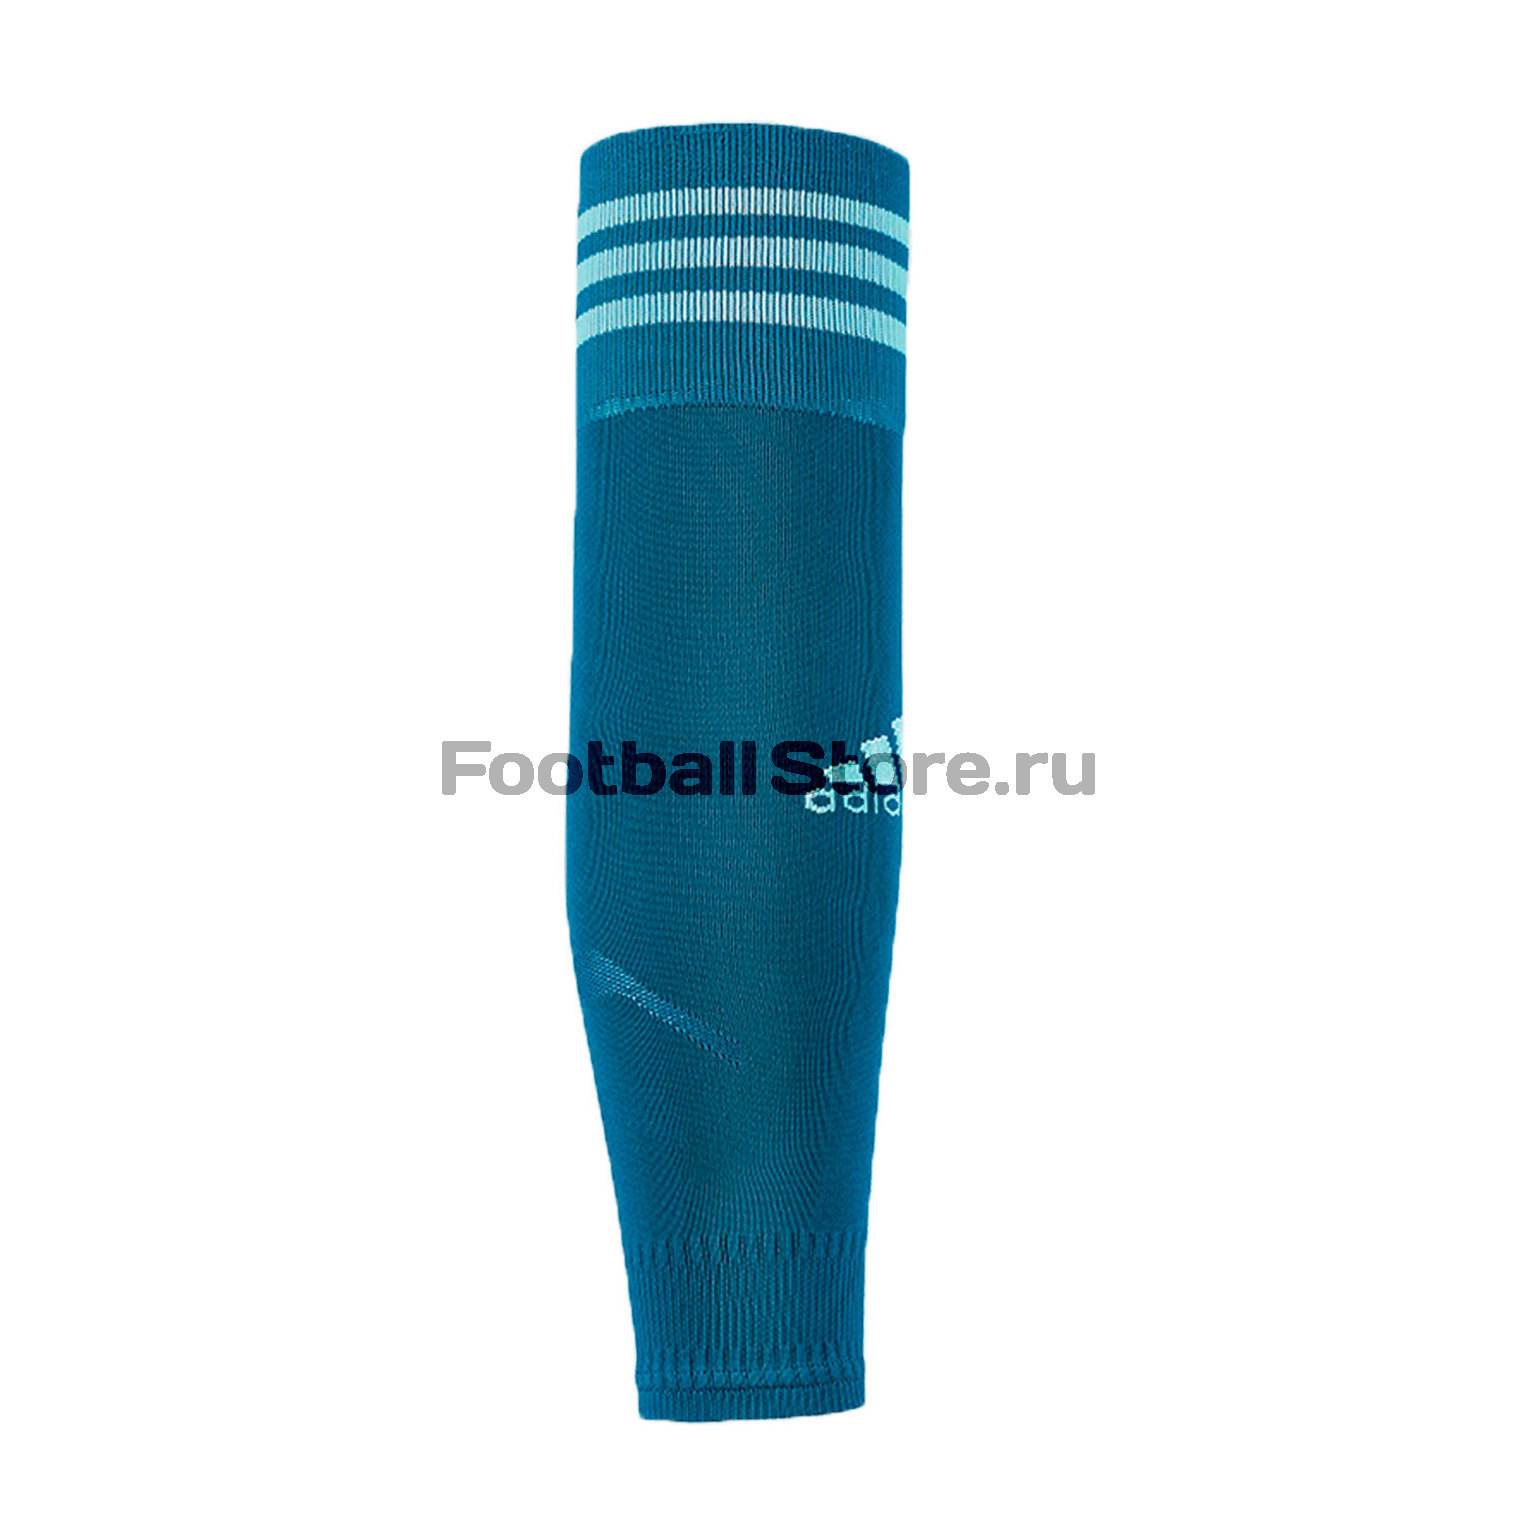 Гетры Adidas Team Sleeve 18 CV7528